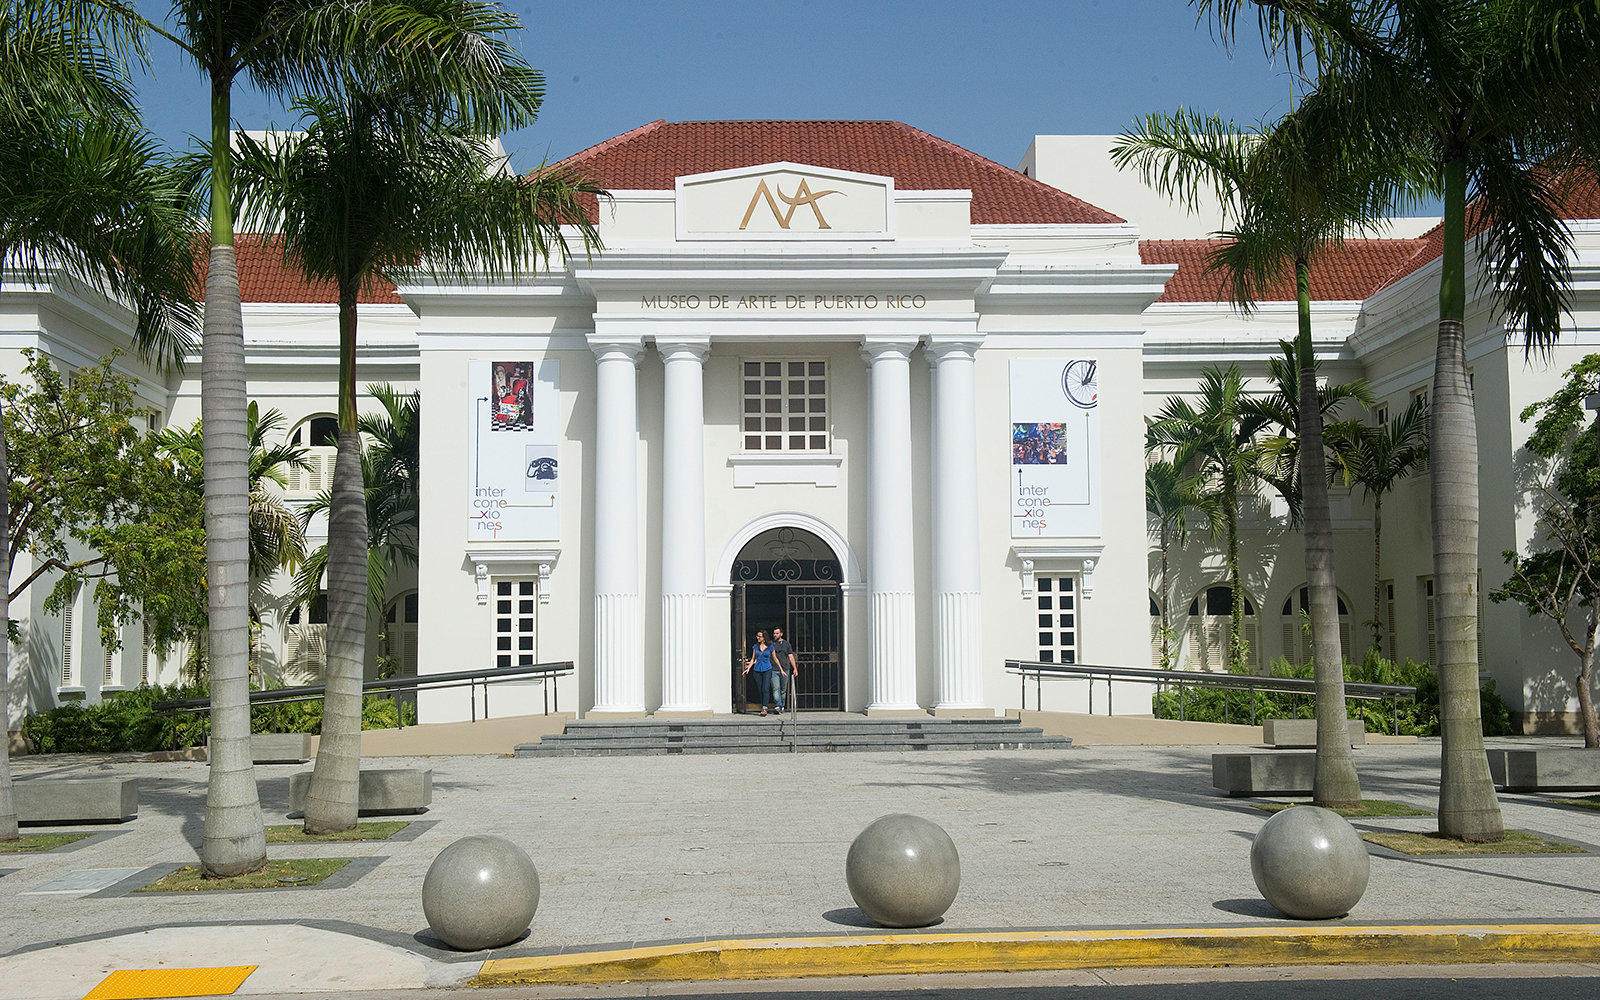 SAN JUAN, PUERTO RICO - JUNE 04: The entrance of the Museo de Arte de Puerto Rico (Puerto Rican Museum of Art) on June 4, 2012 in San Juan, Puerto Rico.  (Photo by Alfredo Sosa/The Christian Science Monitor via Getty Images)